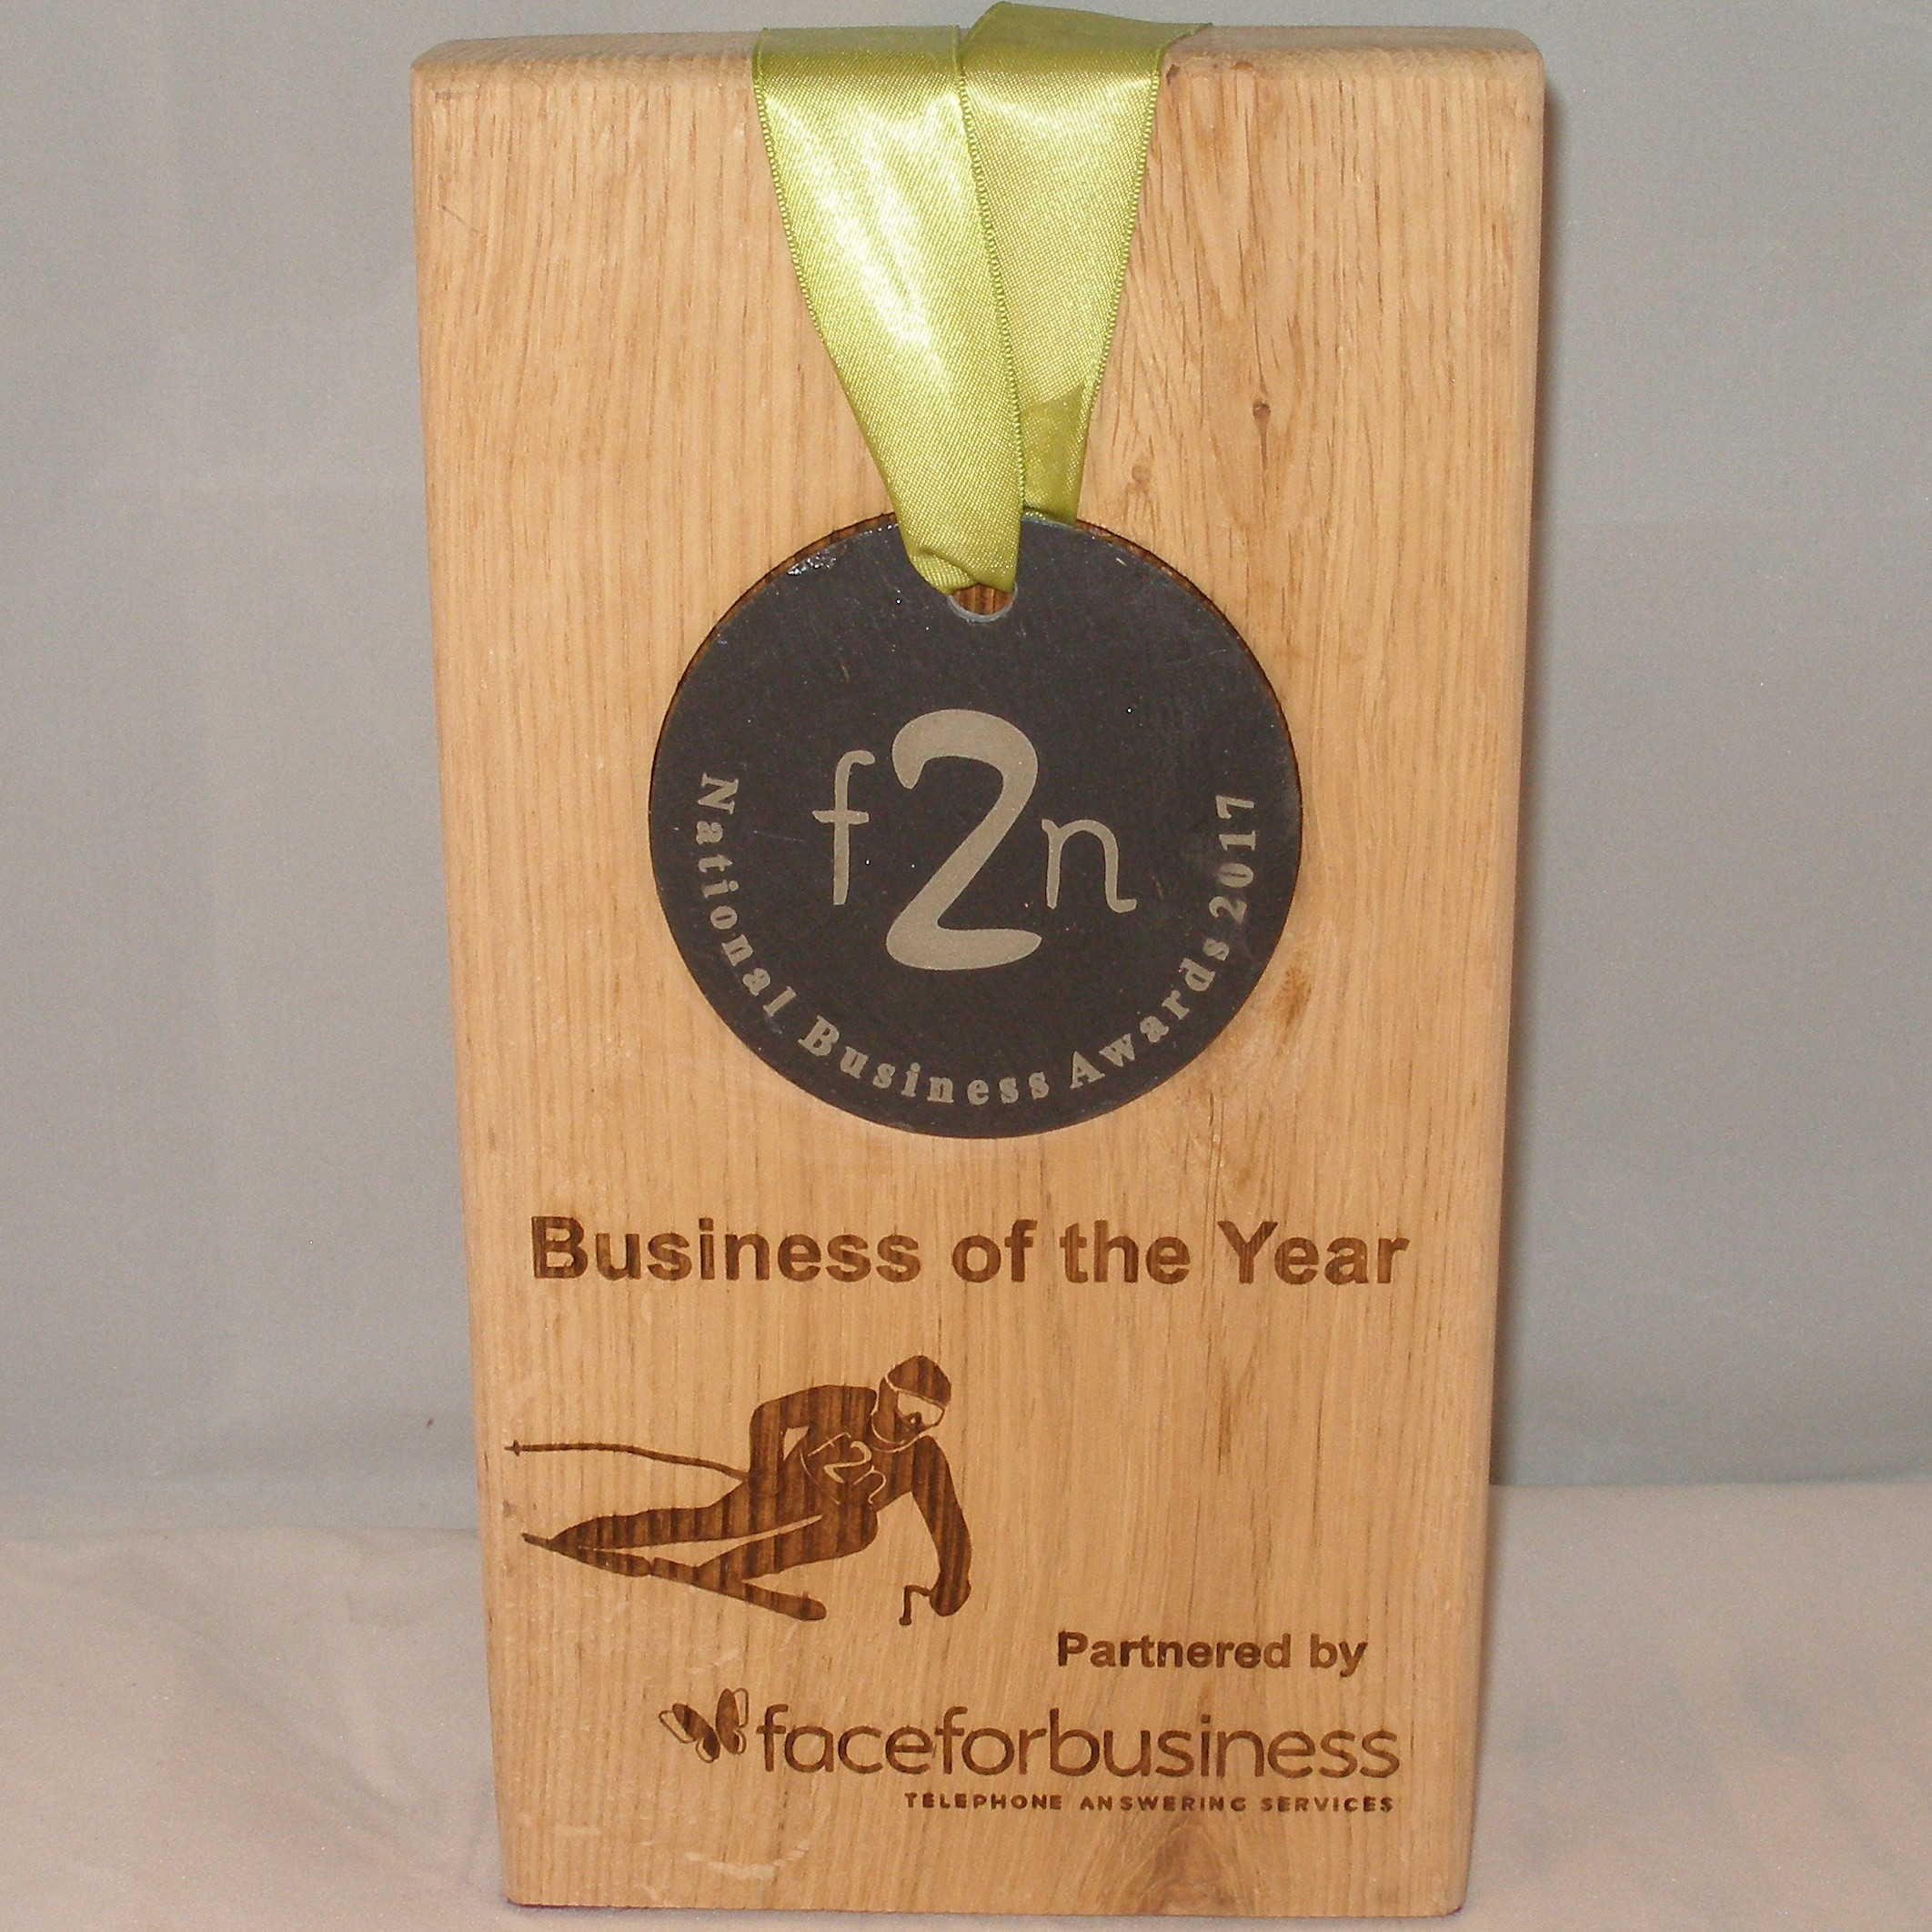 4) Business of the Year partnered by Face for Business